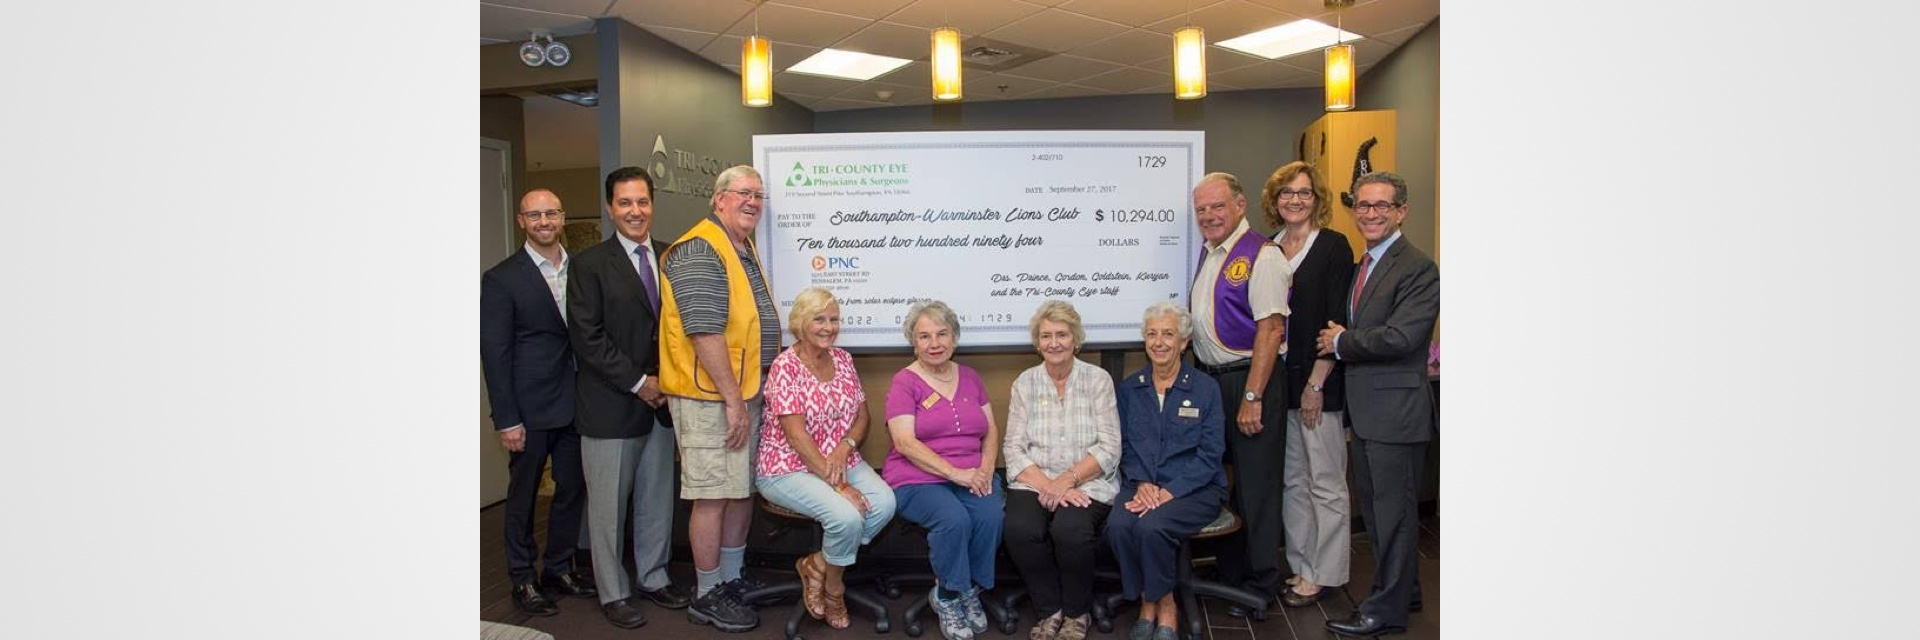 Southampton – Warminster Lions Receive $10,000 Donation Image 1